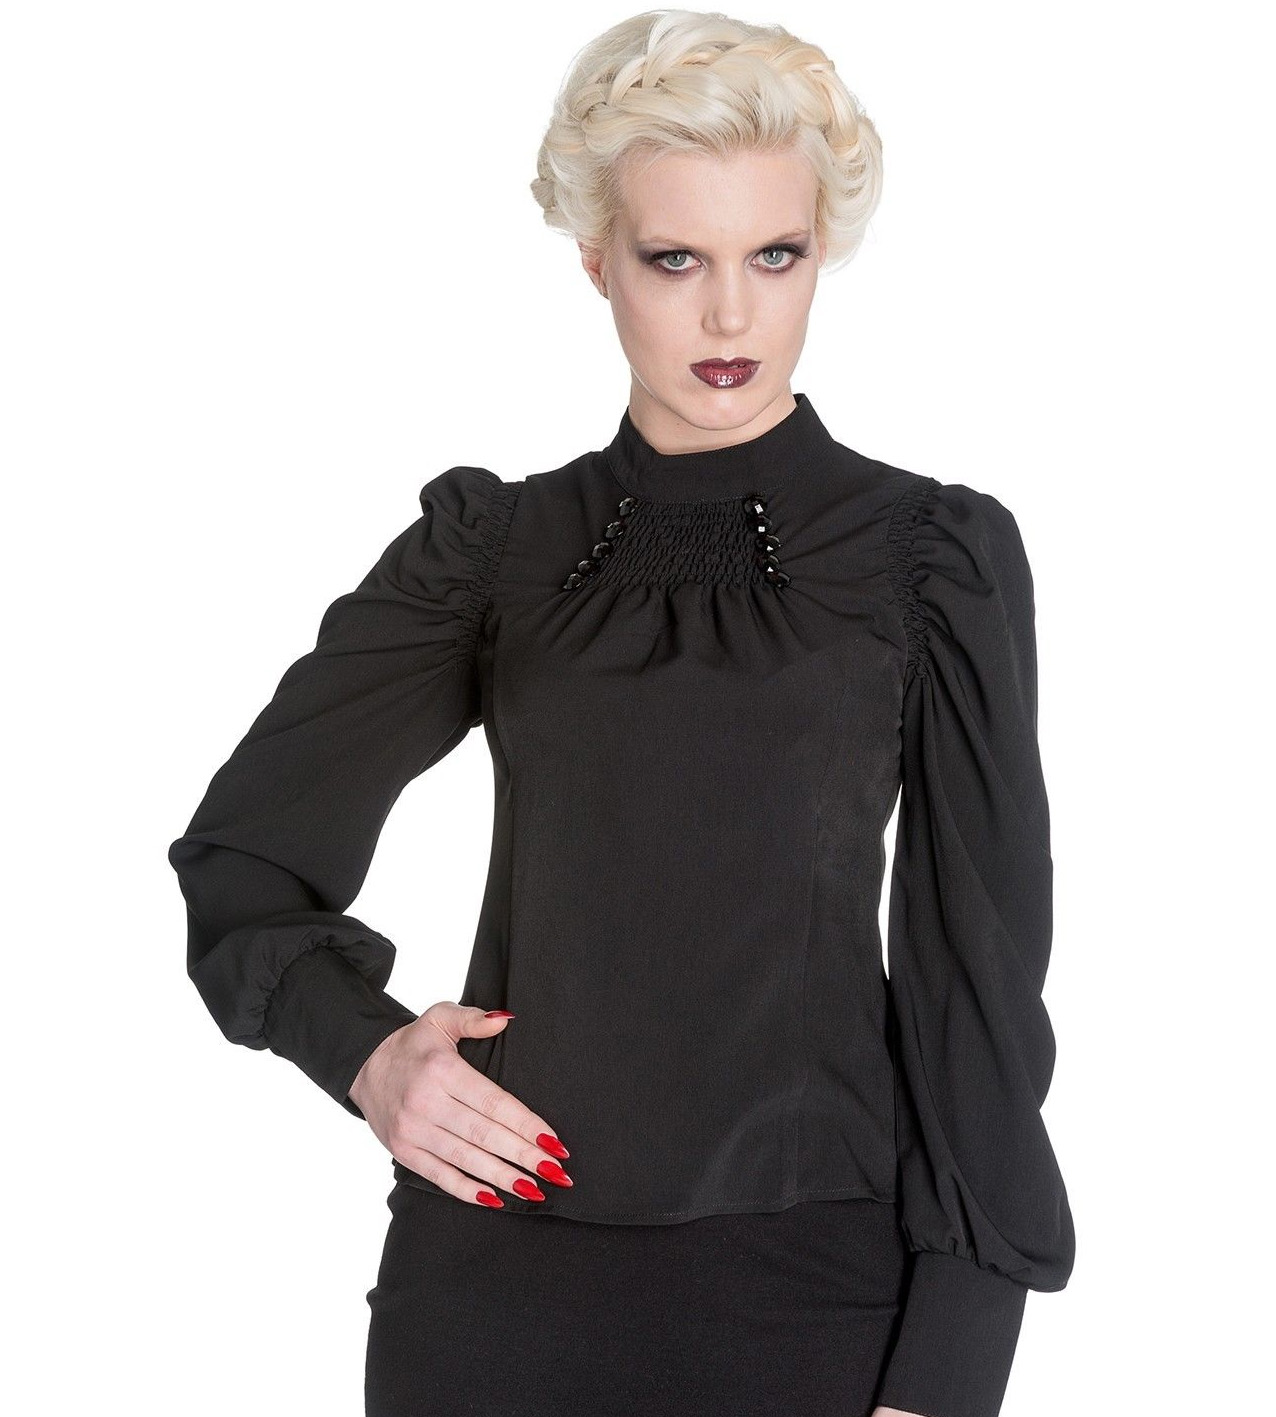 Hell-Bunny-Spin-Doctor-Vampire-Gothic-Shirt-Top-MELROSE-Blouse-All-Sizes thumbnail 3